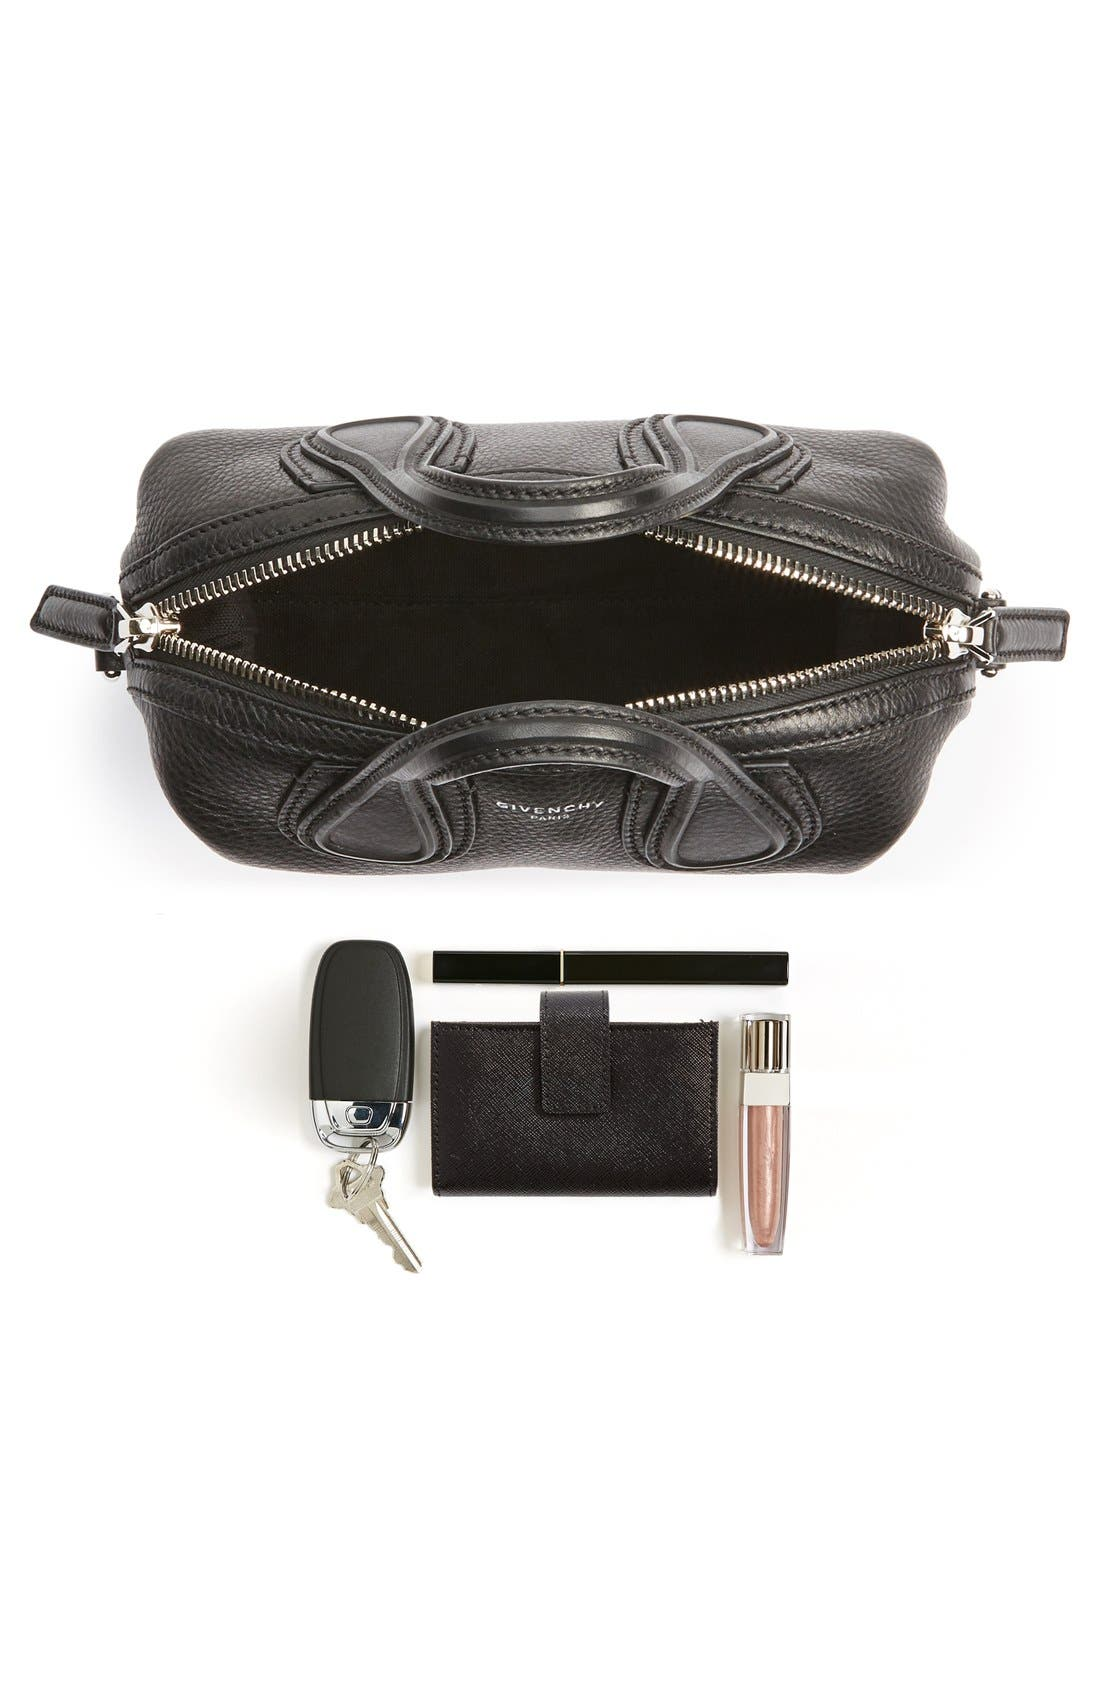 GIVENCHY, Micro Nightingale Leather Satchel, Alternate thumbnail 4, color, 001